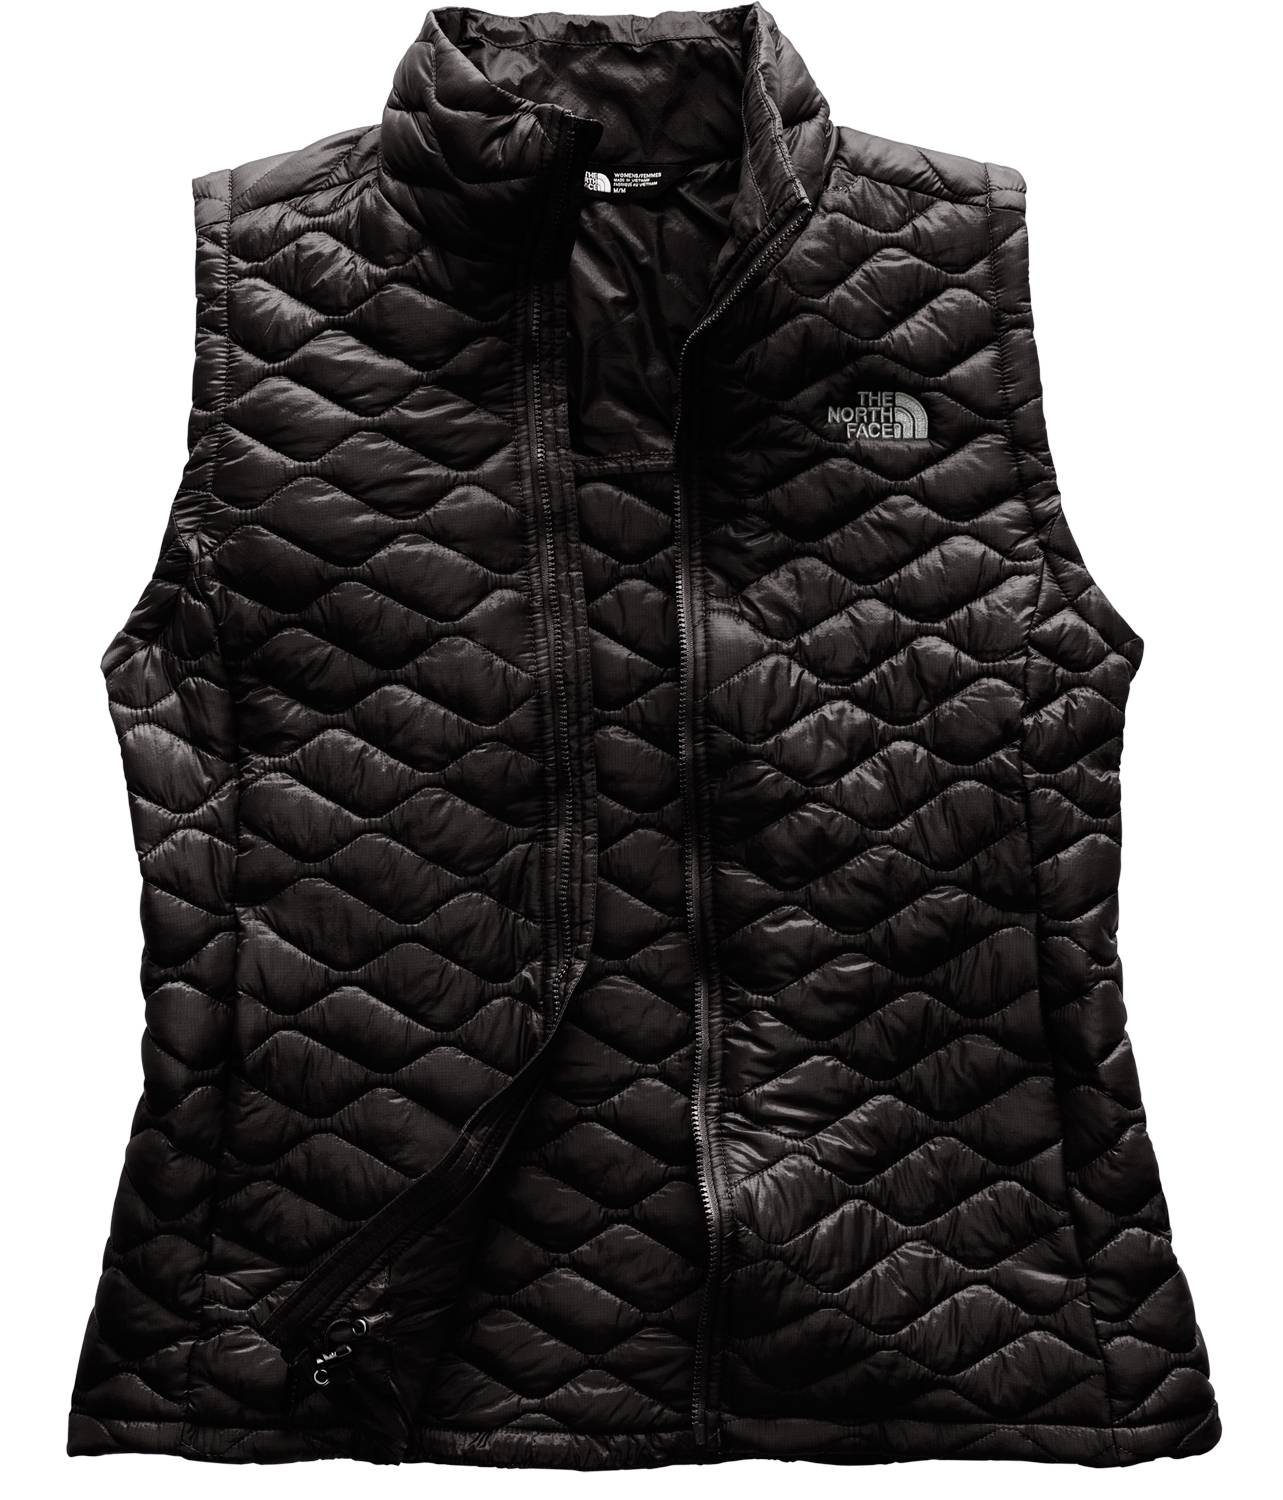 d770559f04  149.95. The North Face Thermoball Women s Custom Vest